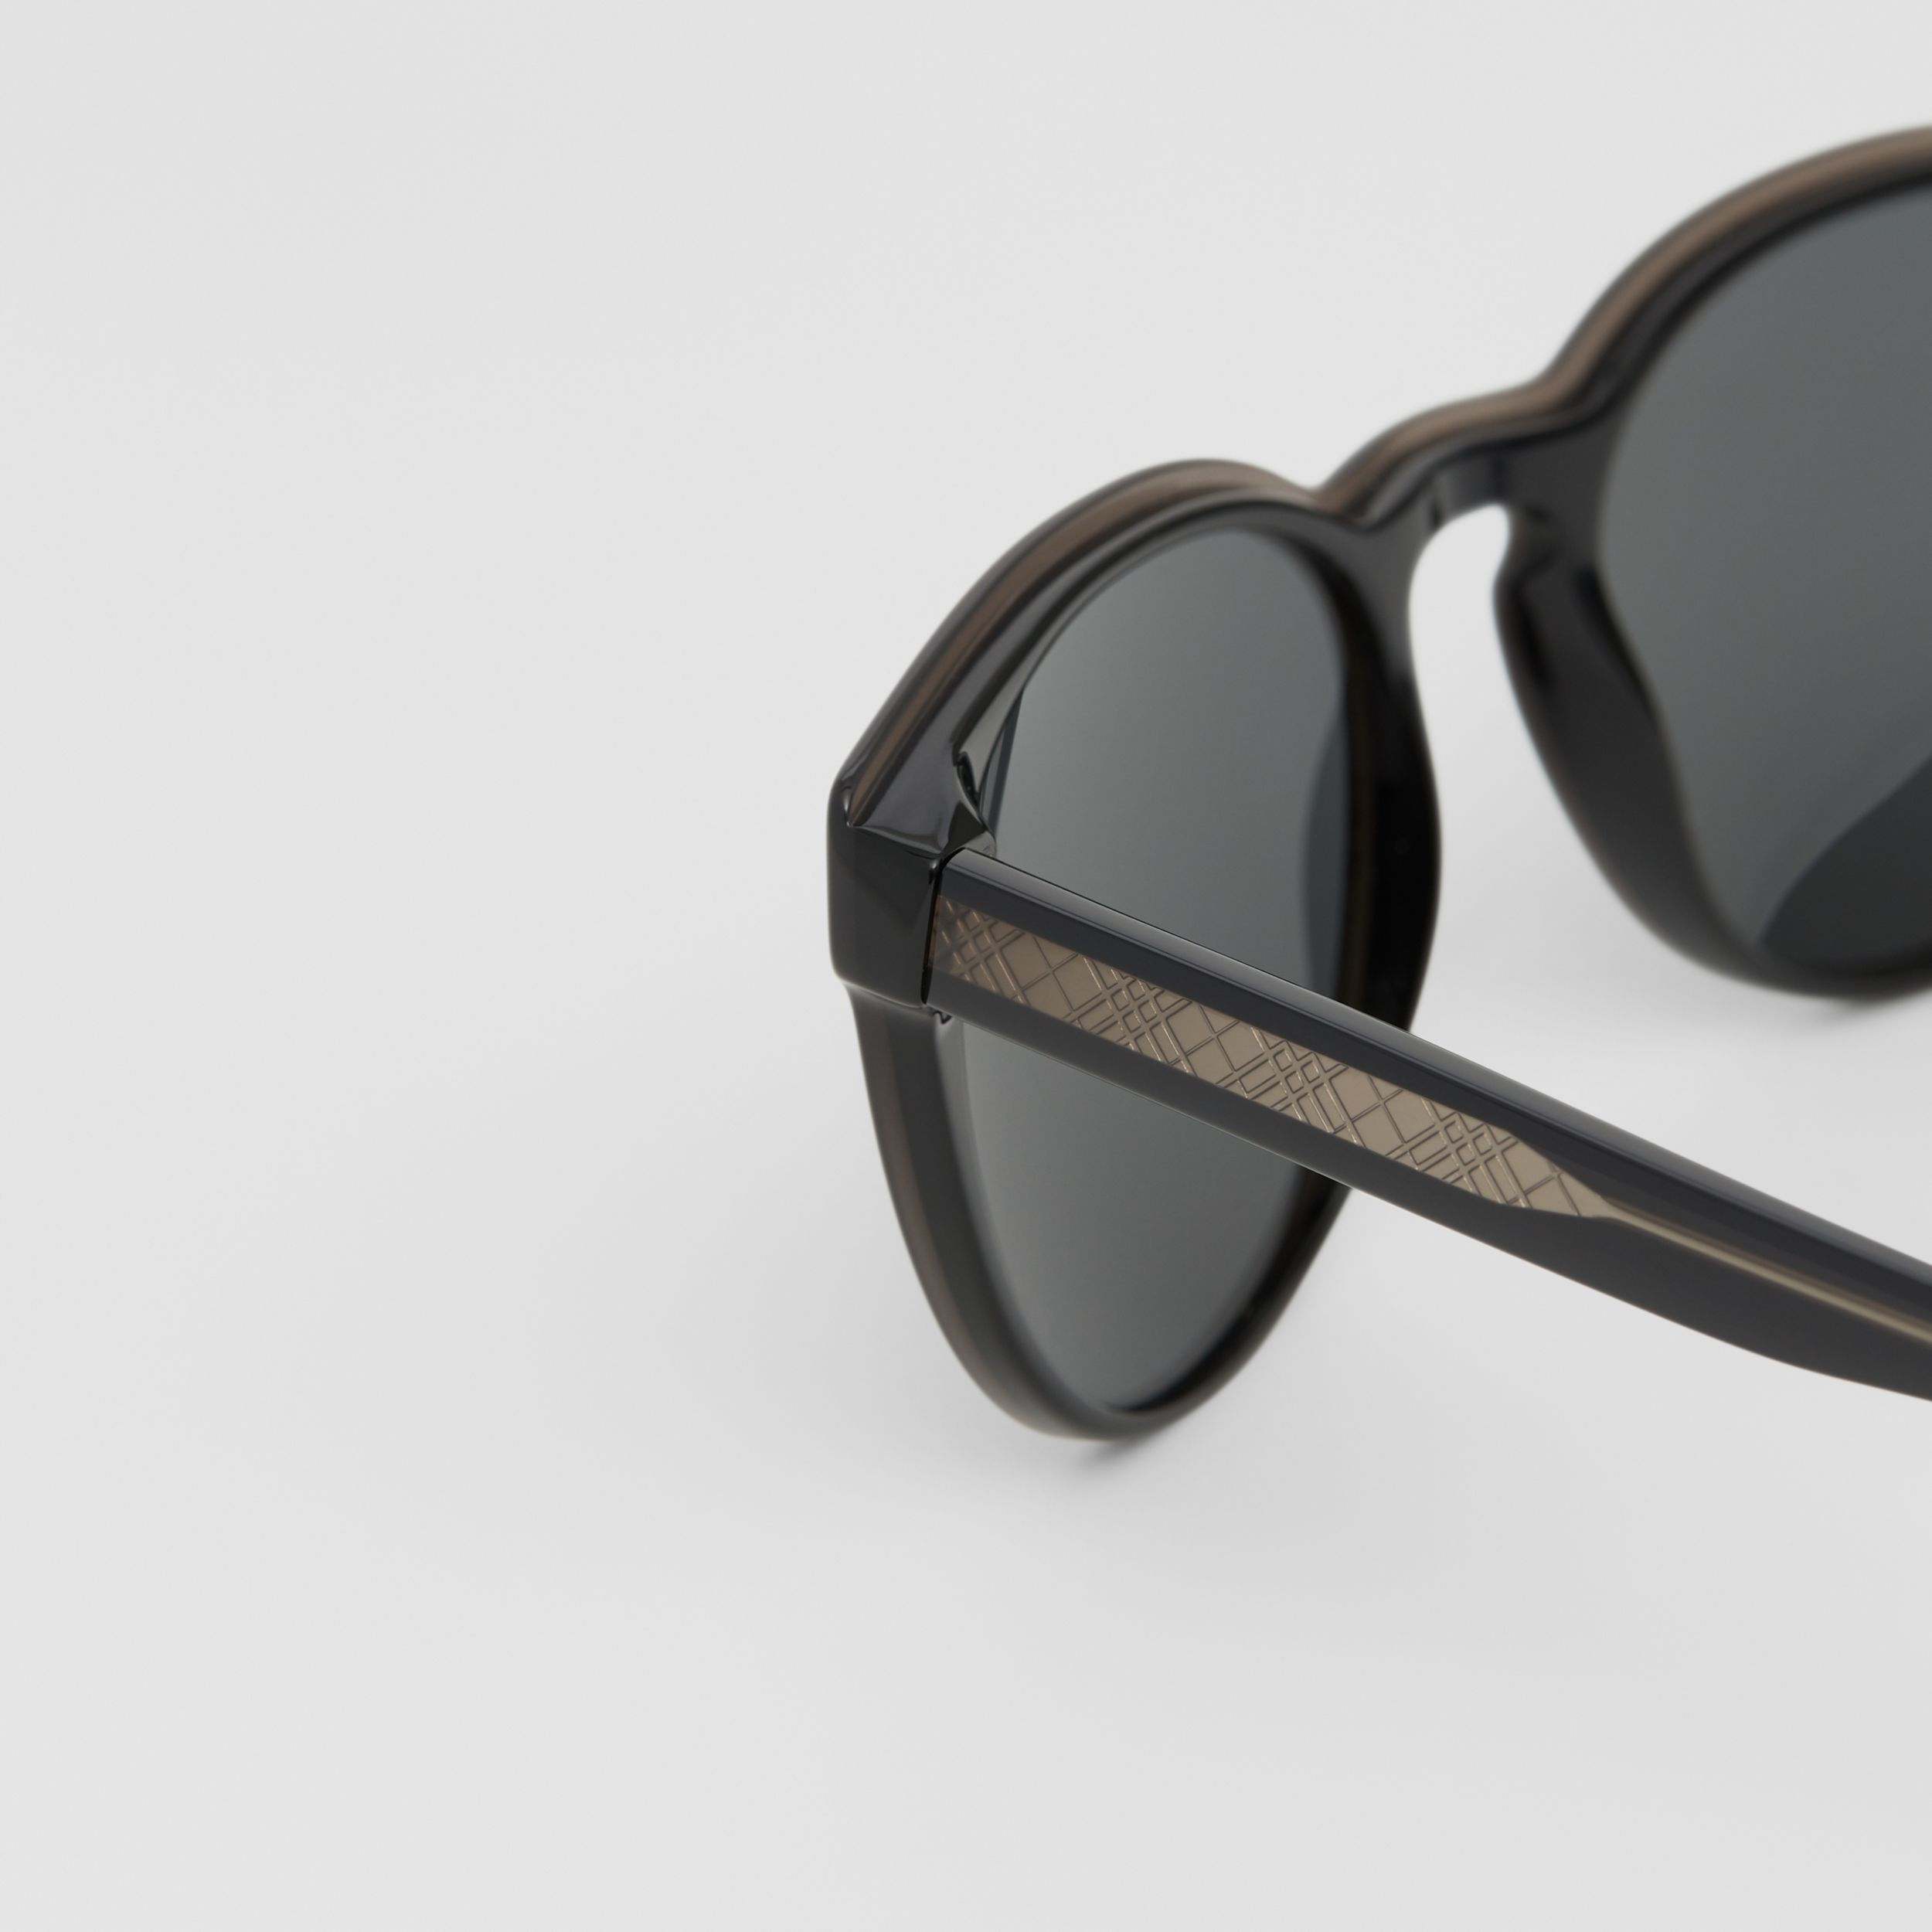 Round Frame Sunglasses in Black - Men | Burberry - 2